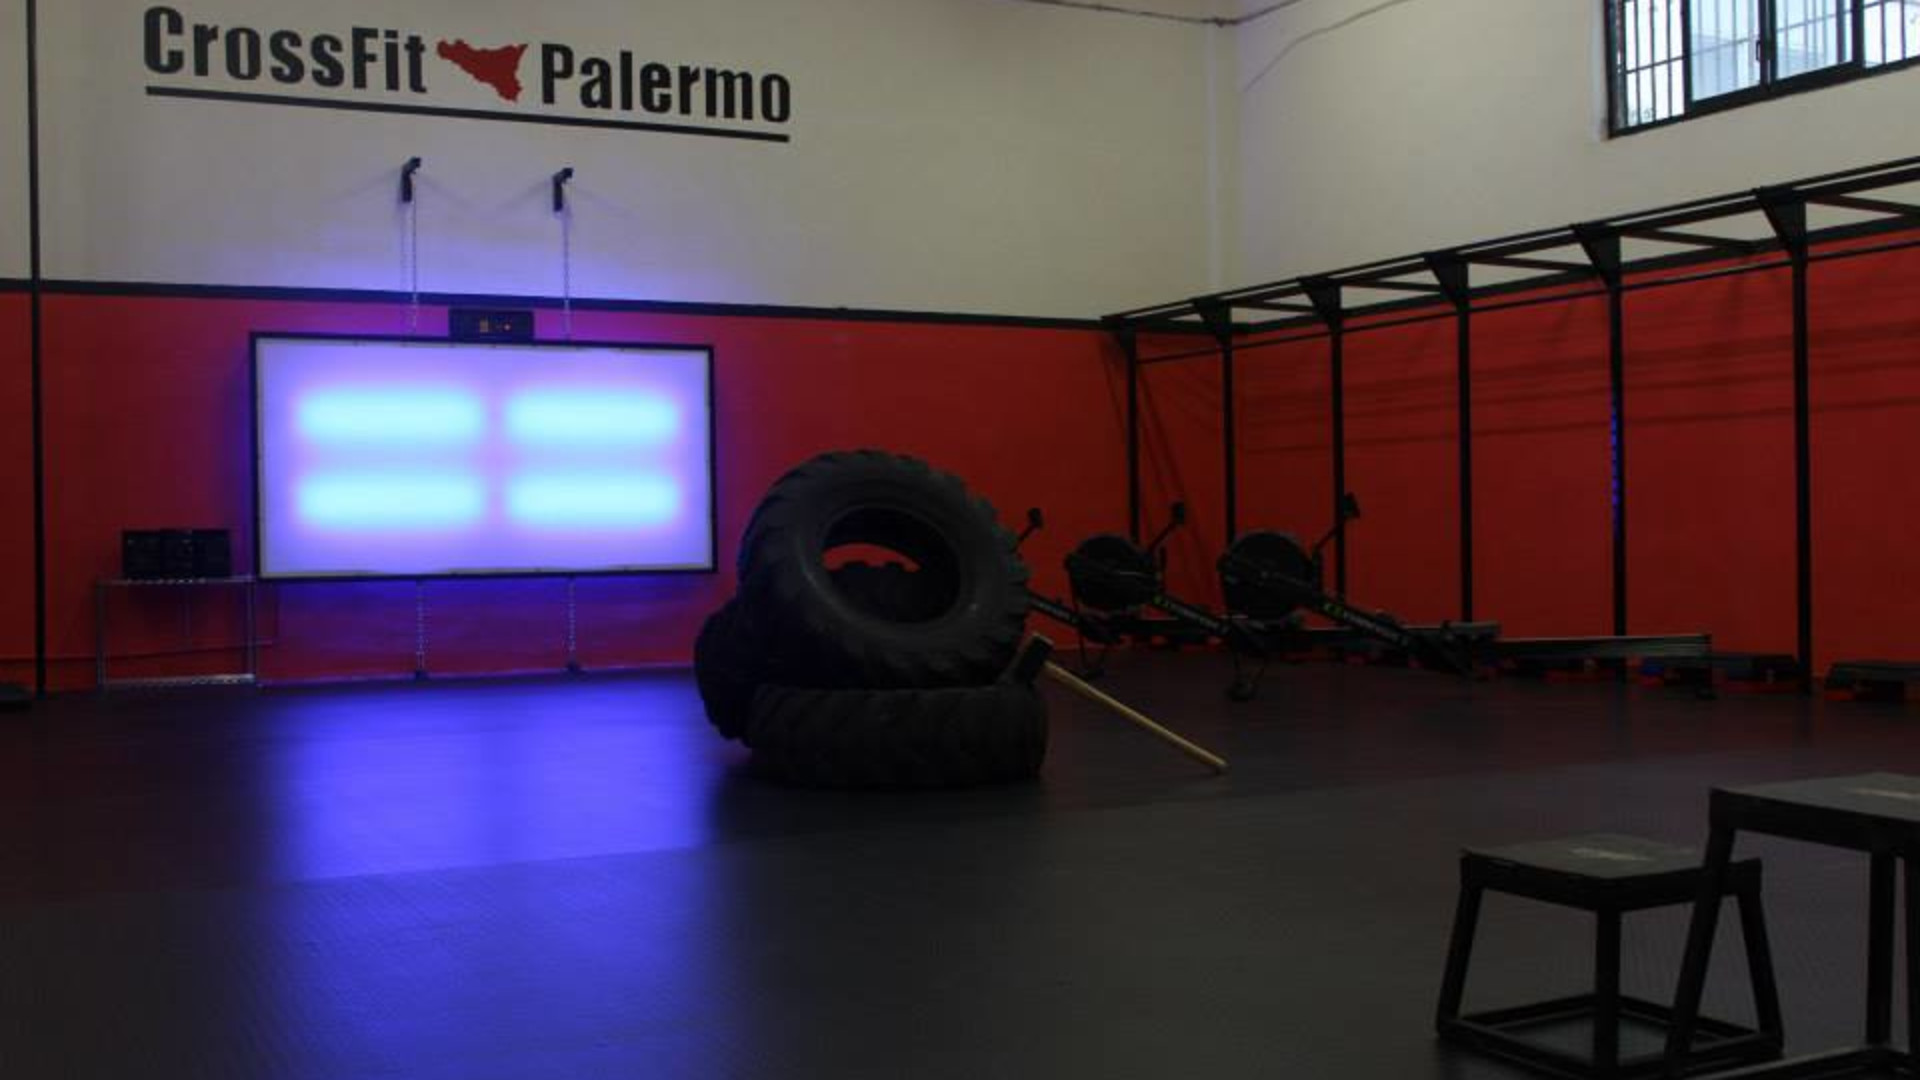 Crossfit Palermo Palermo